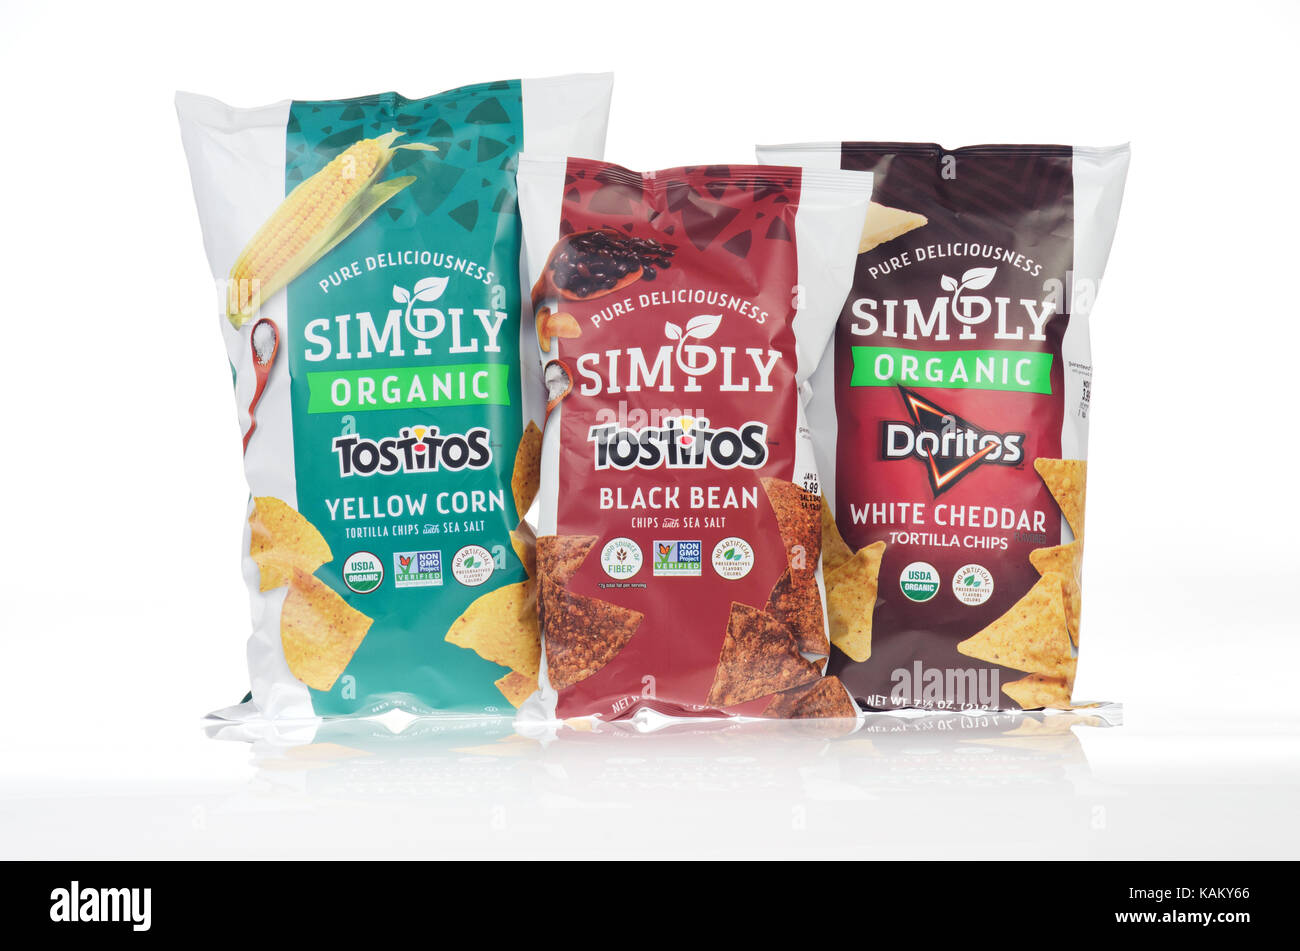 3 bags of snack chips, Simply Organic Tostitos Corn, Simply Organic Doritos and Simply Tostitos Black Bean Chips - Stock Image